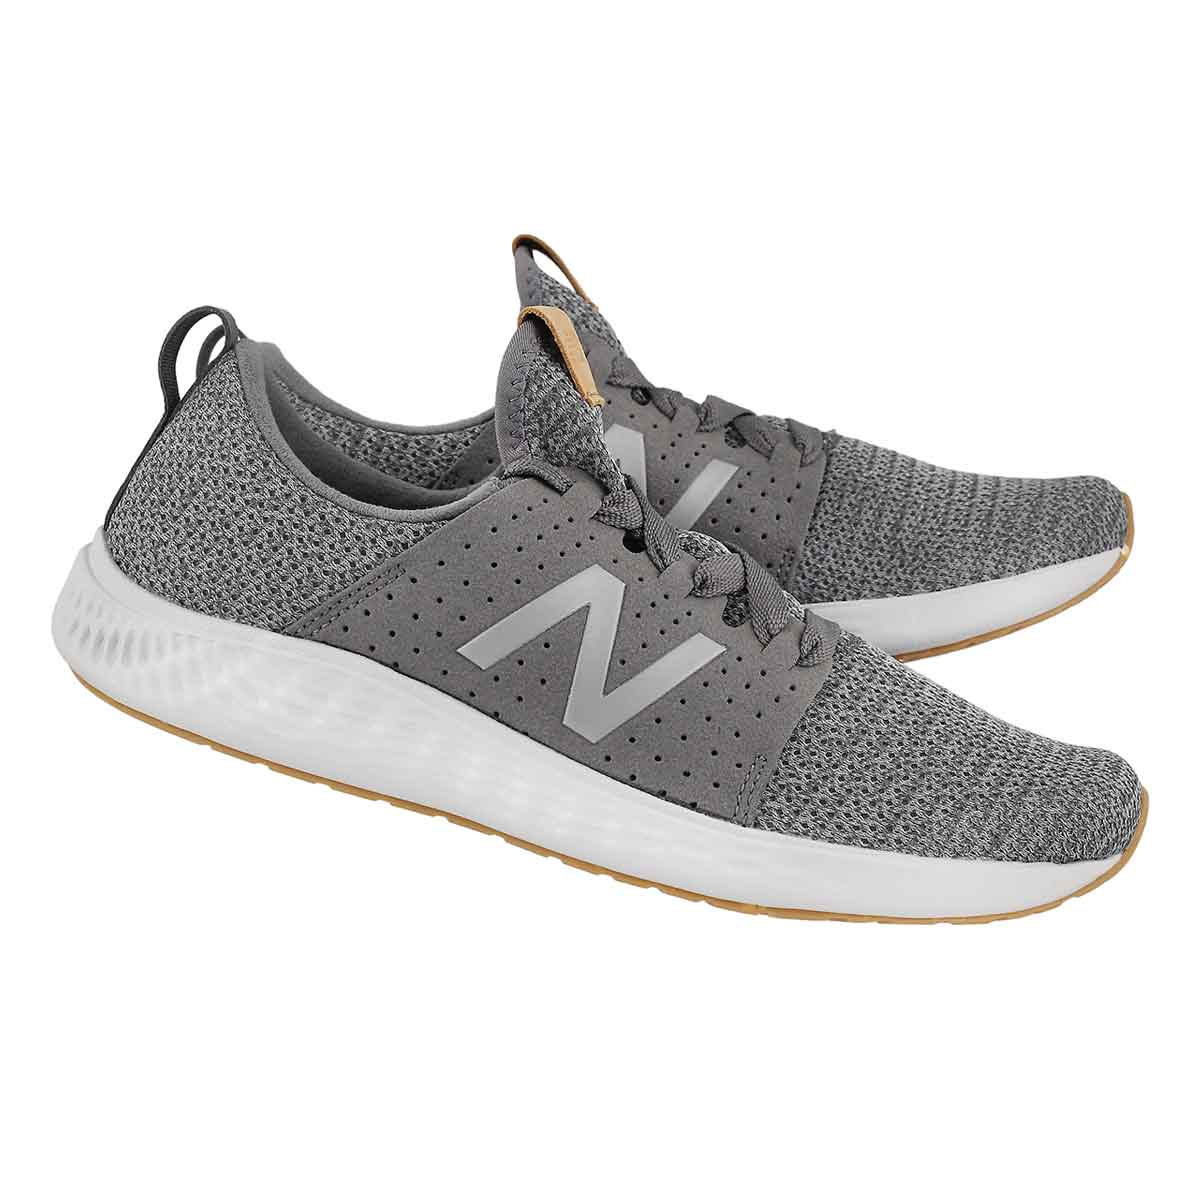 Mns Cruz castlerock/grey running shoe